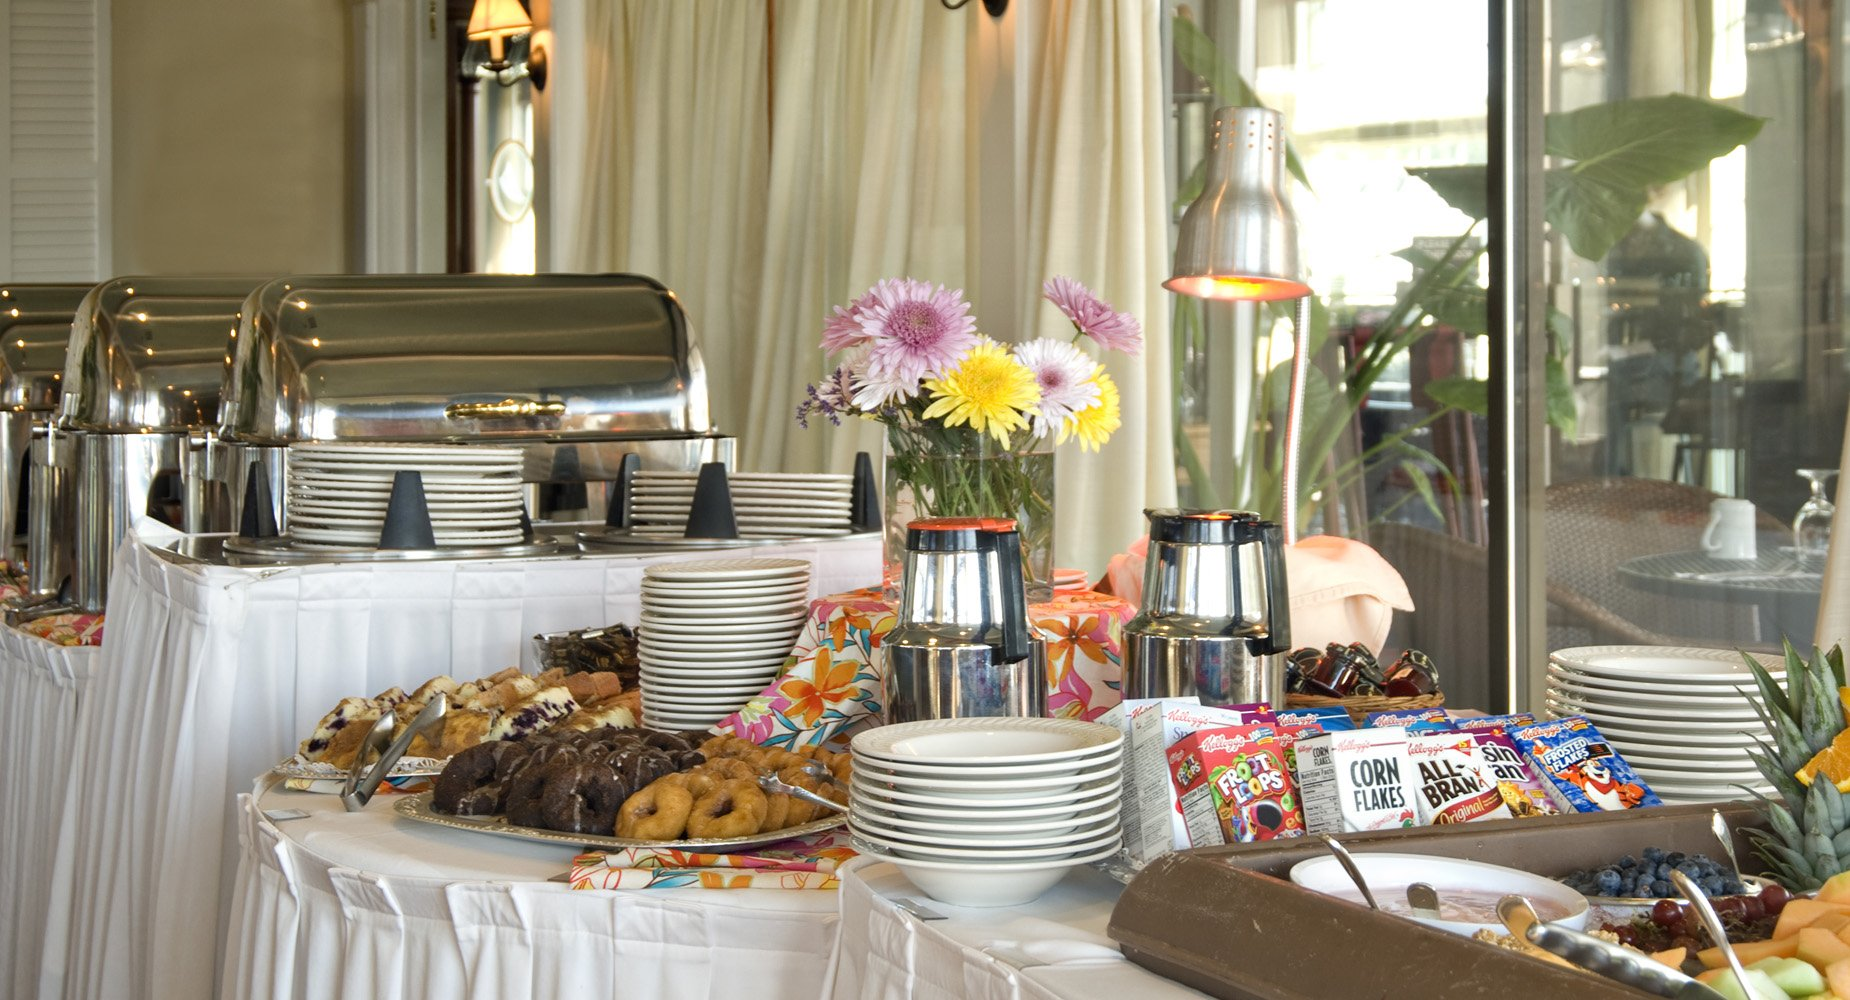 A hearty breakfast buffet is included in our rates.